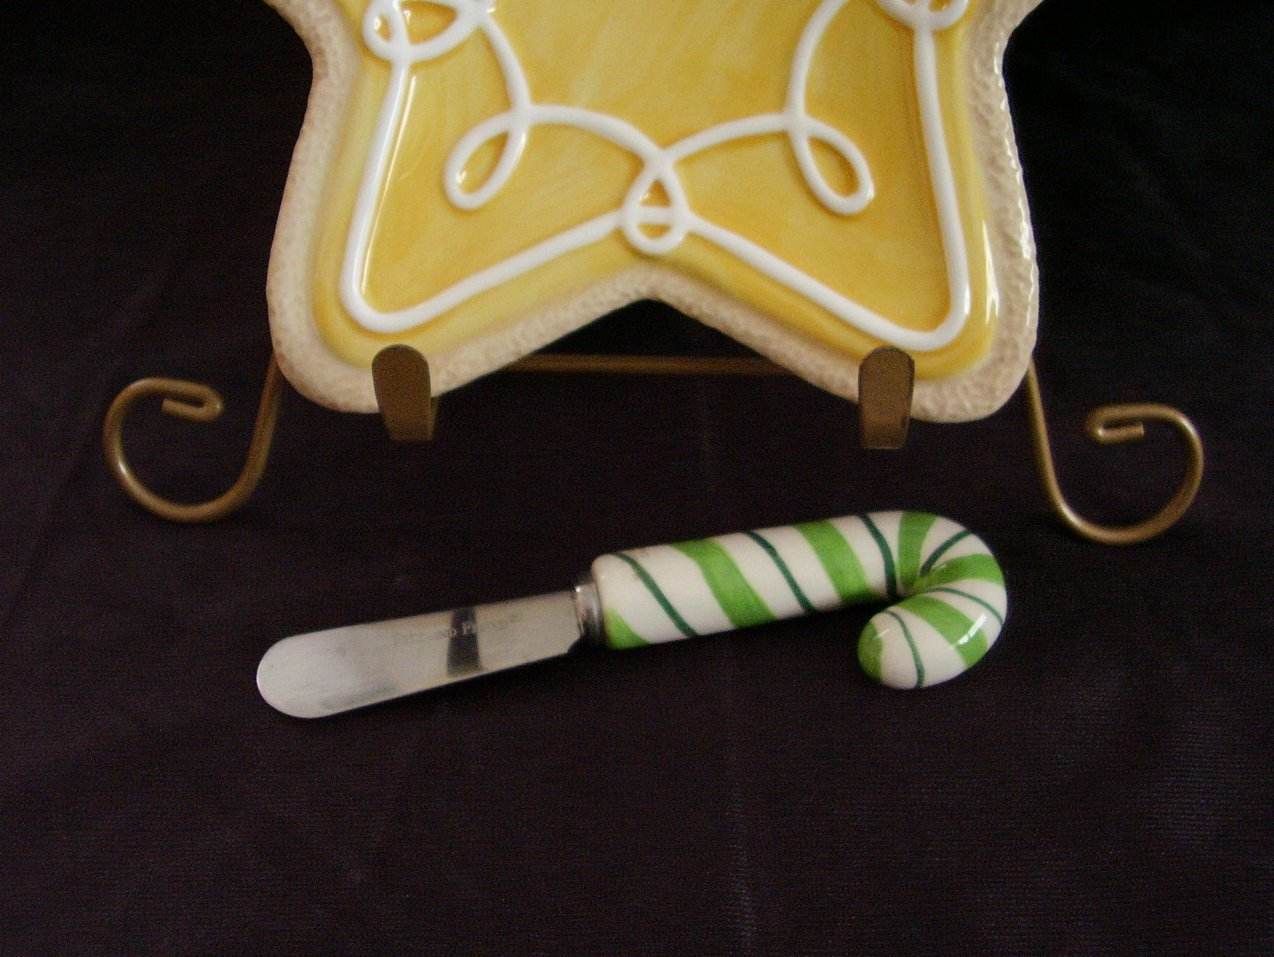 Fitz floyd yellow star cookie canape dish with spreader for Canape spreaders